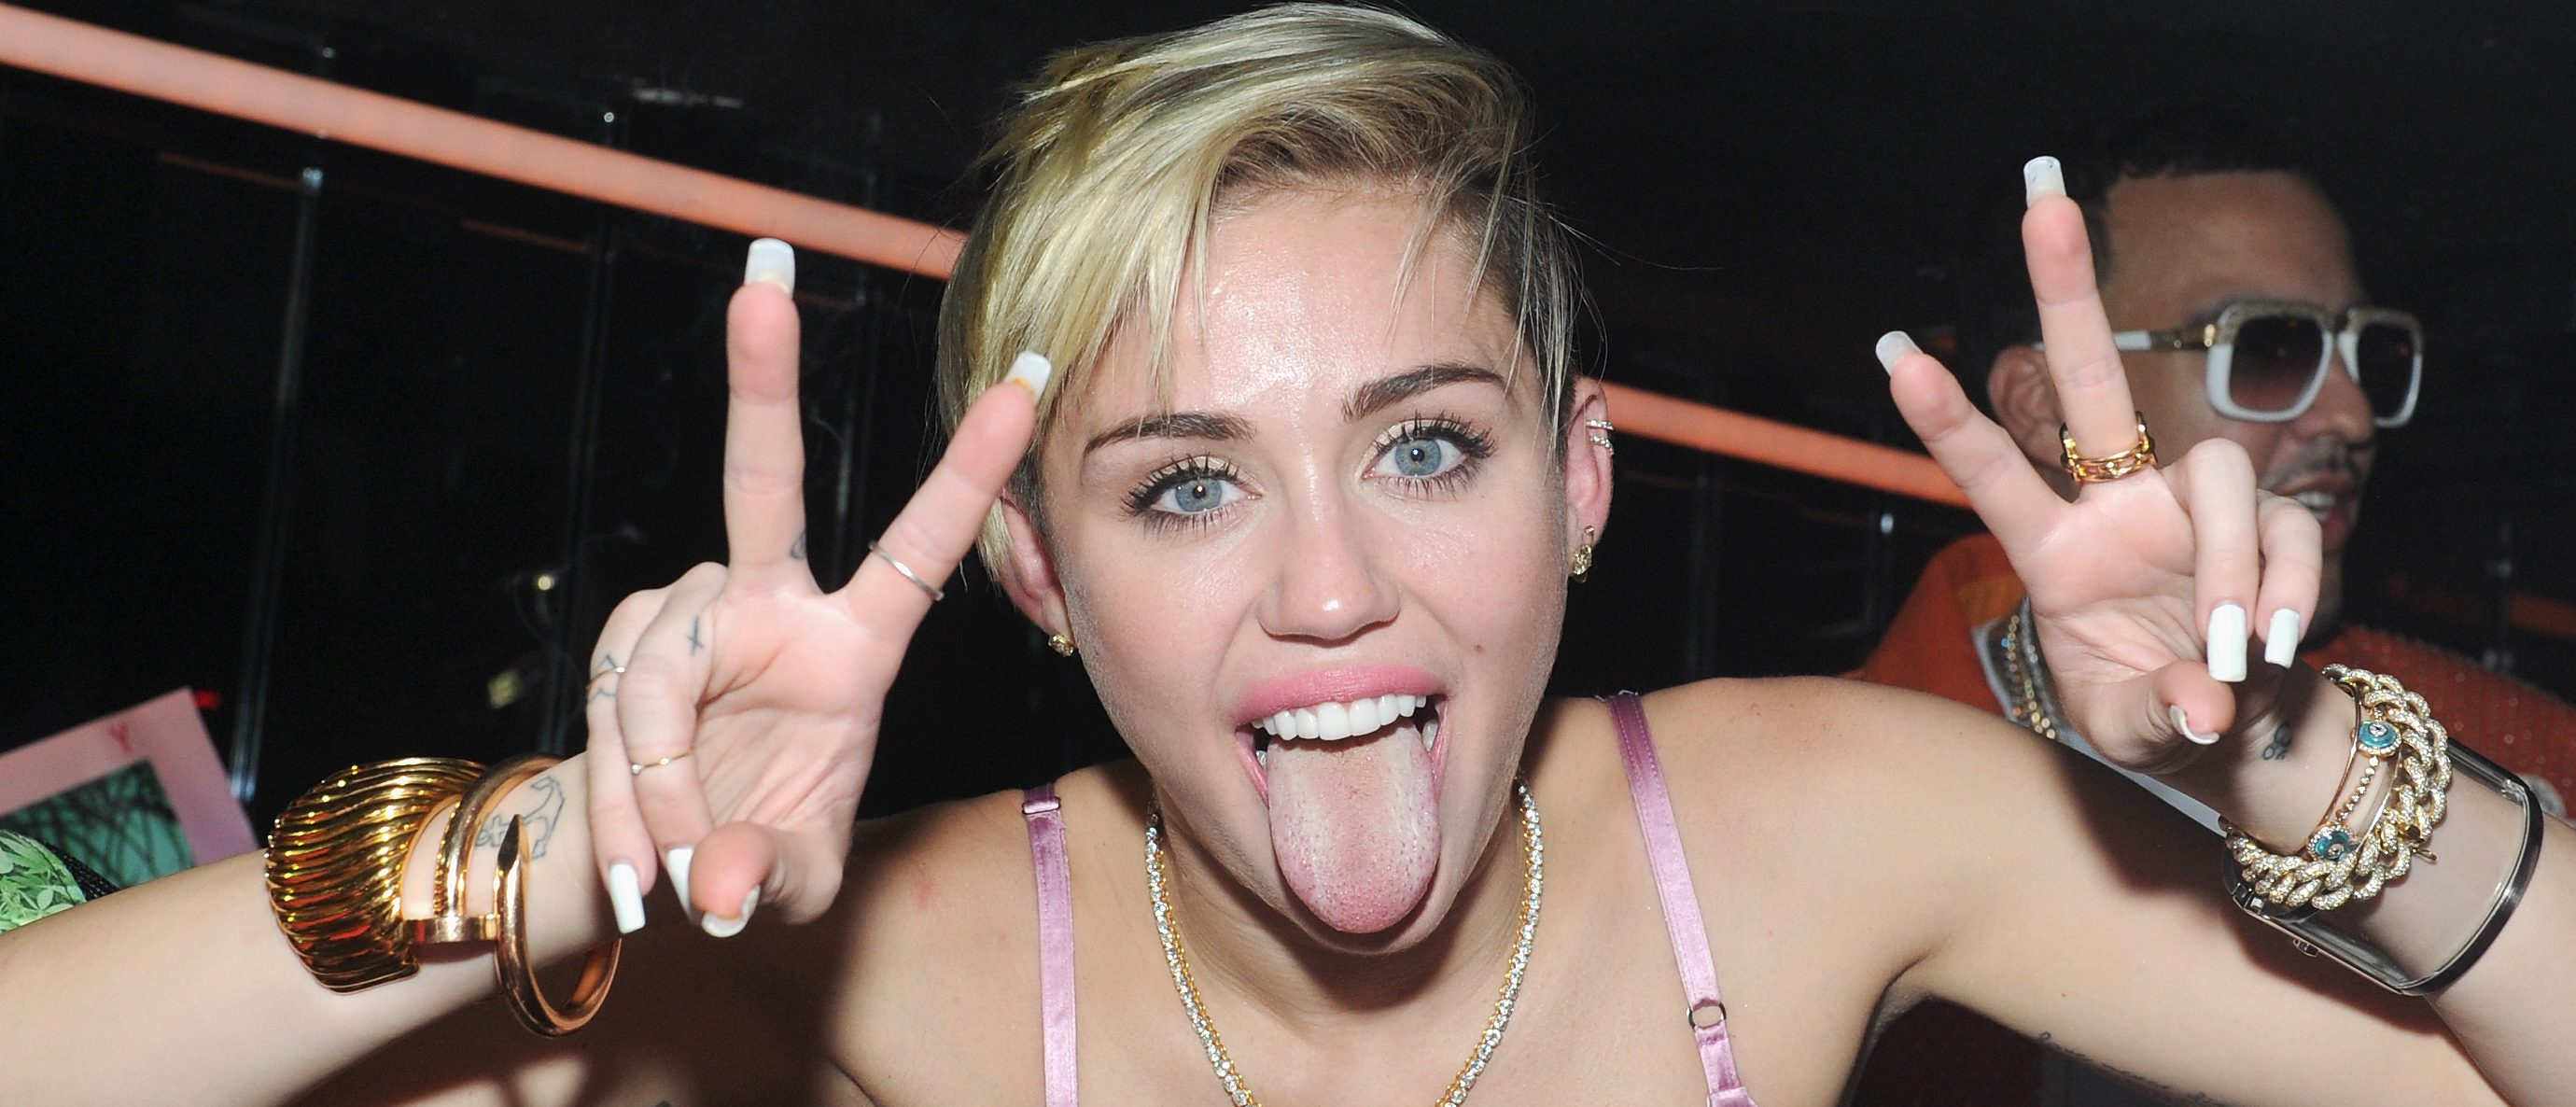 Miley Cyrus (Photo: Jamie McCarthy/Getty Images for The General)